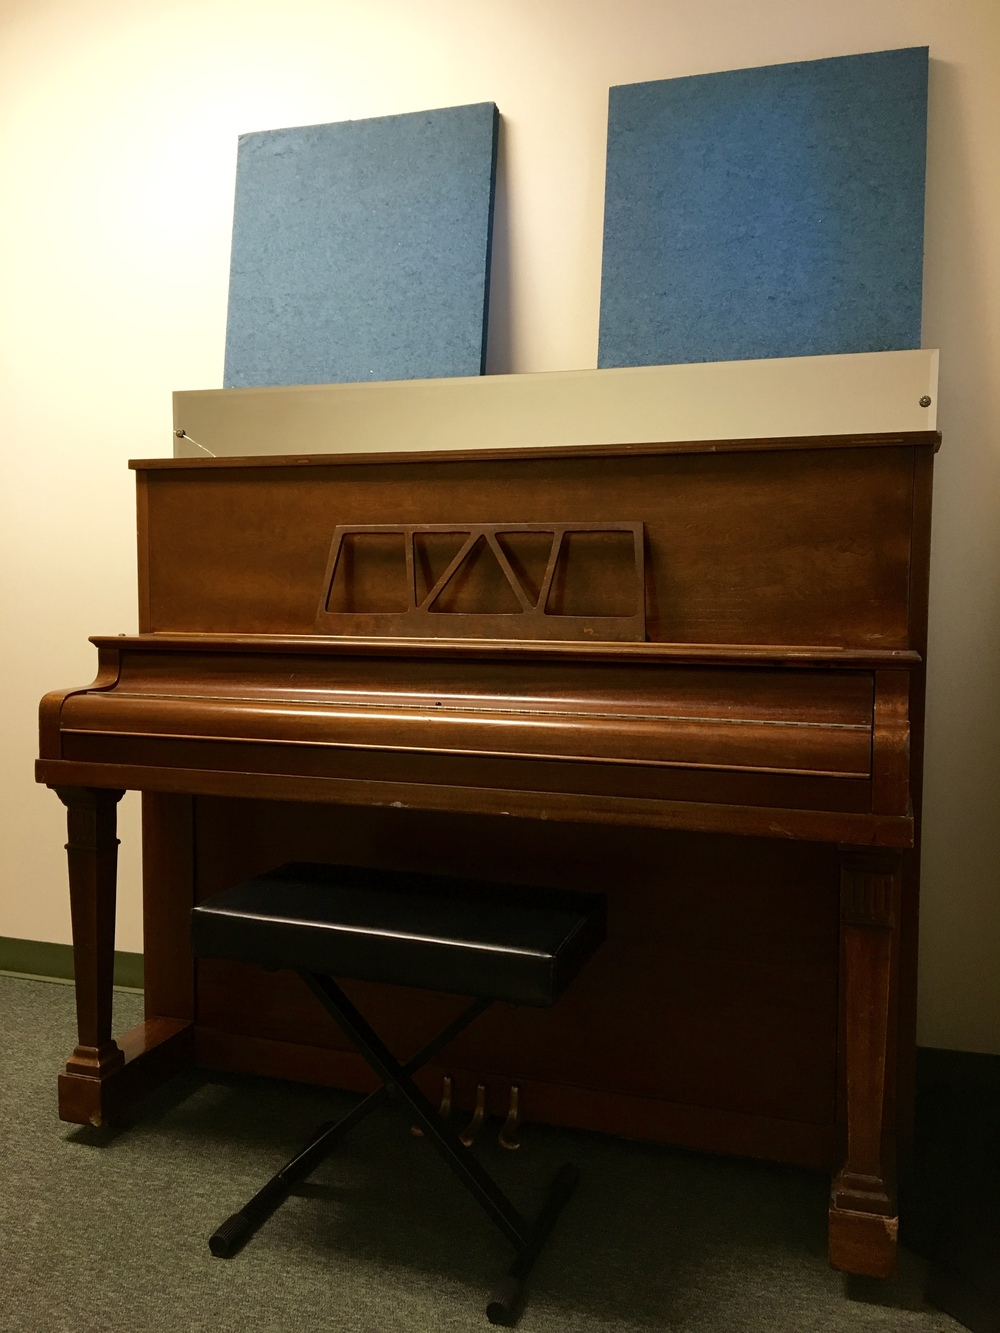 ROOM 1 UPRIGHT PIANO PROVIDED